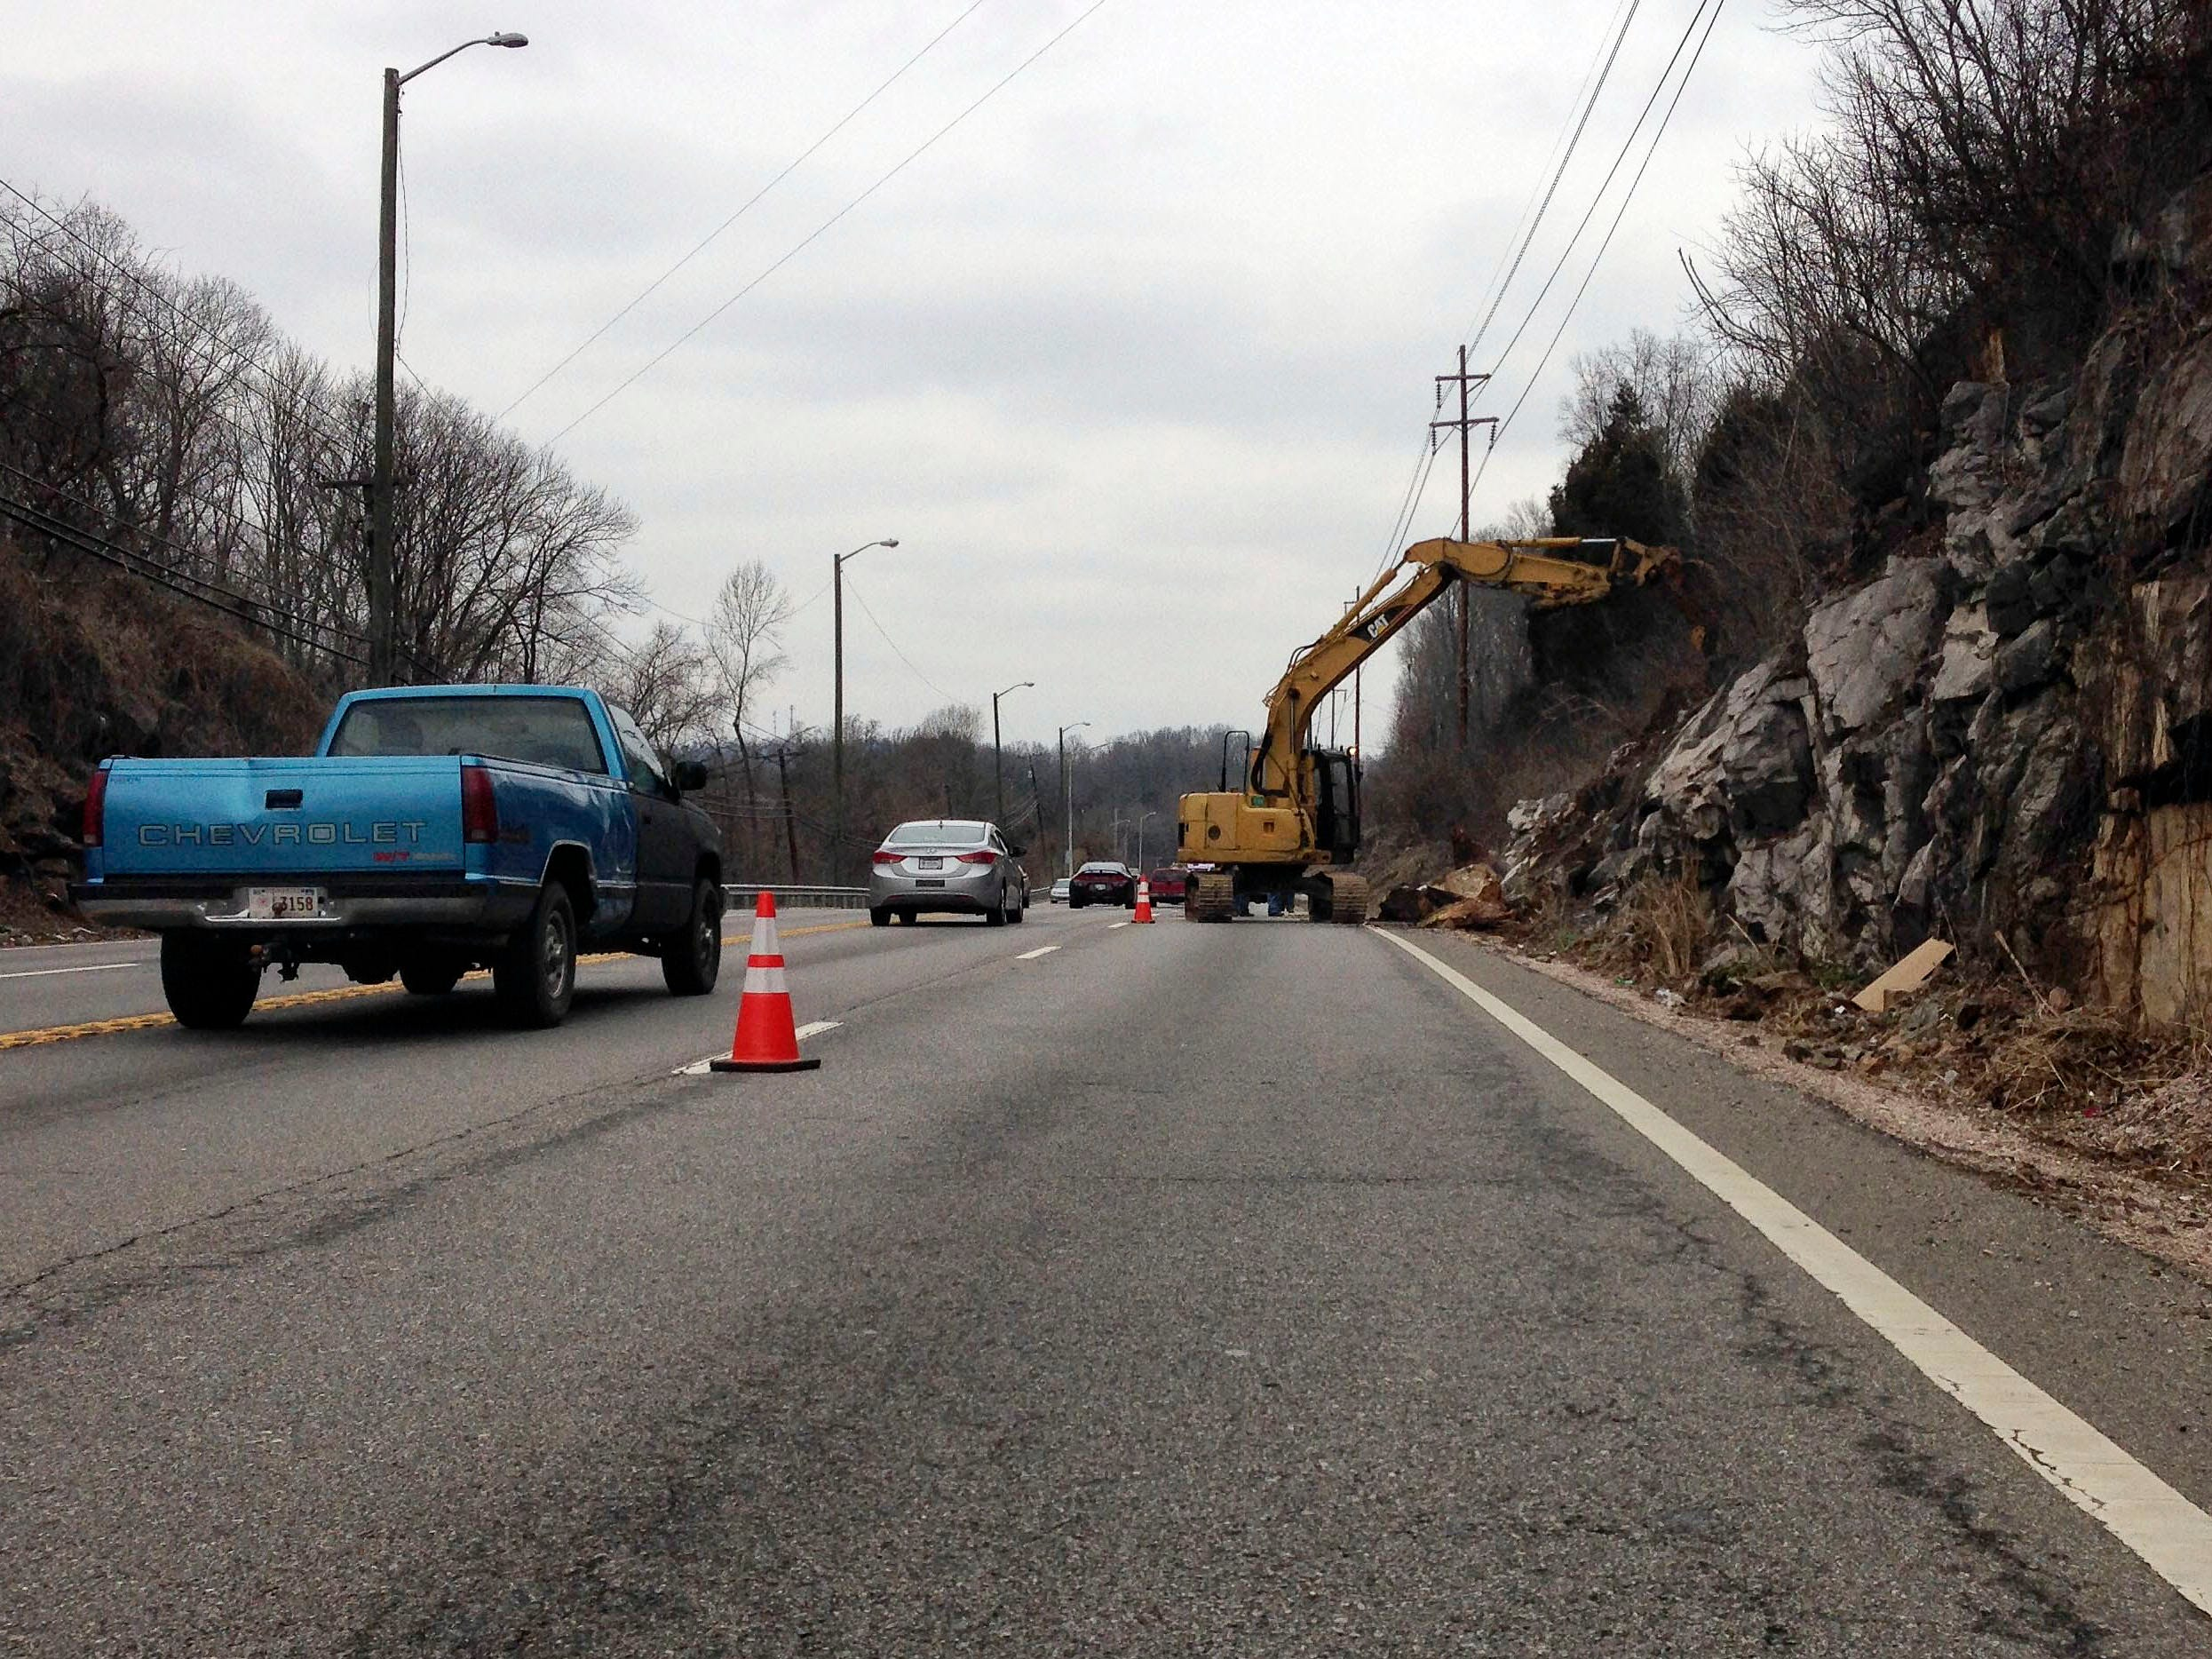 TDOT crews began work to remove loose rocks from a section of hillside along Chapman Highway around 10 a.m. Thursday. One lane on the northbound side was closed near Ye Olde Steakhouse on Feb. 2, 2014.